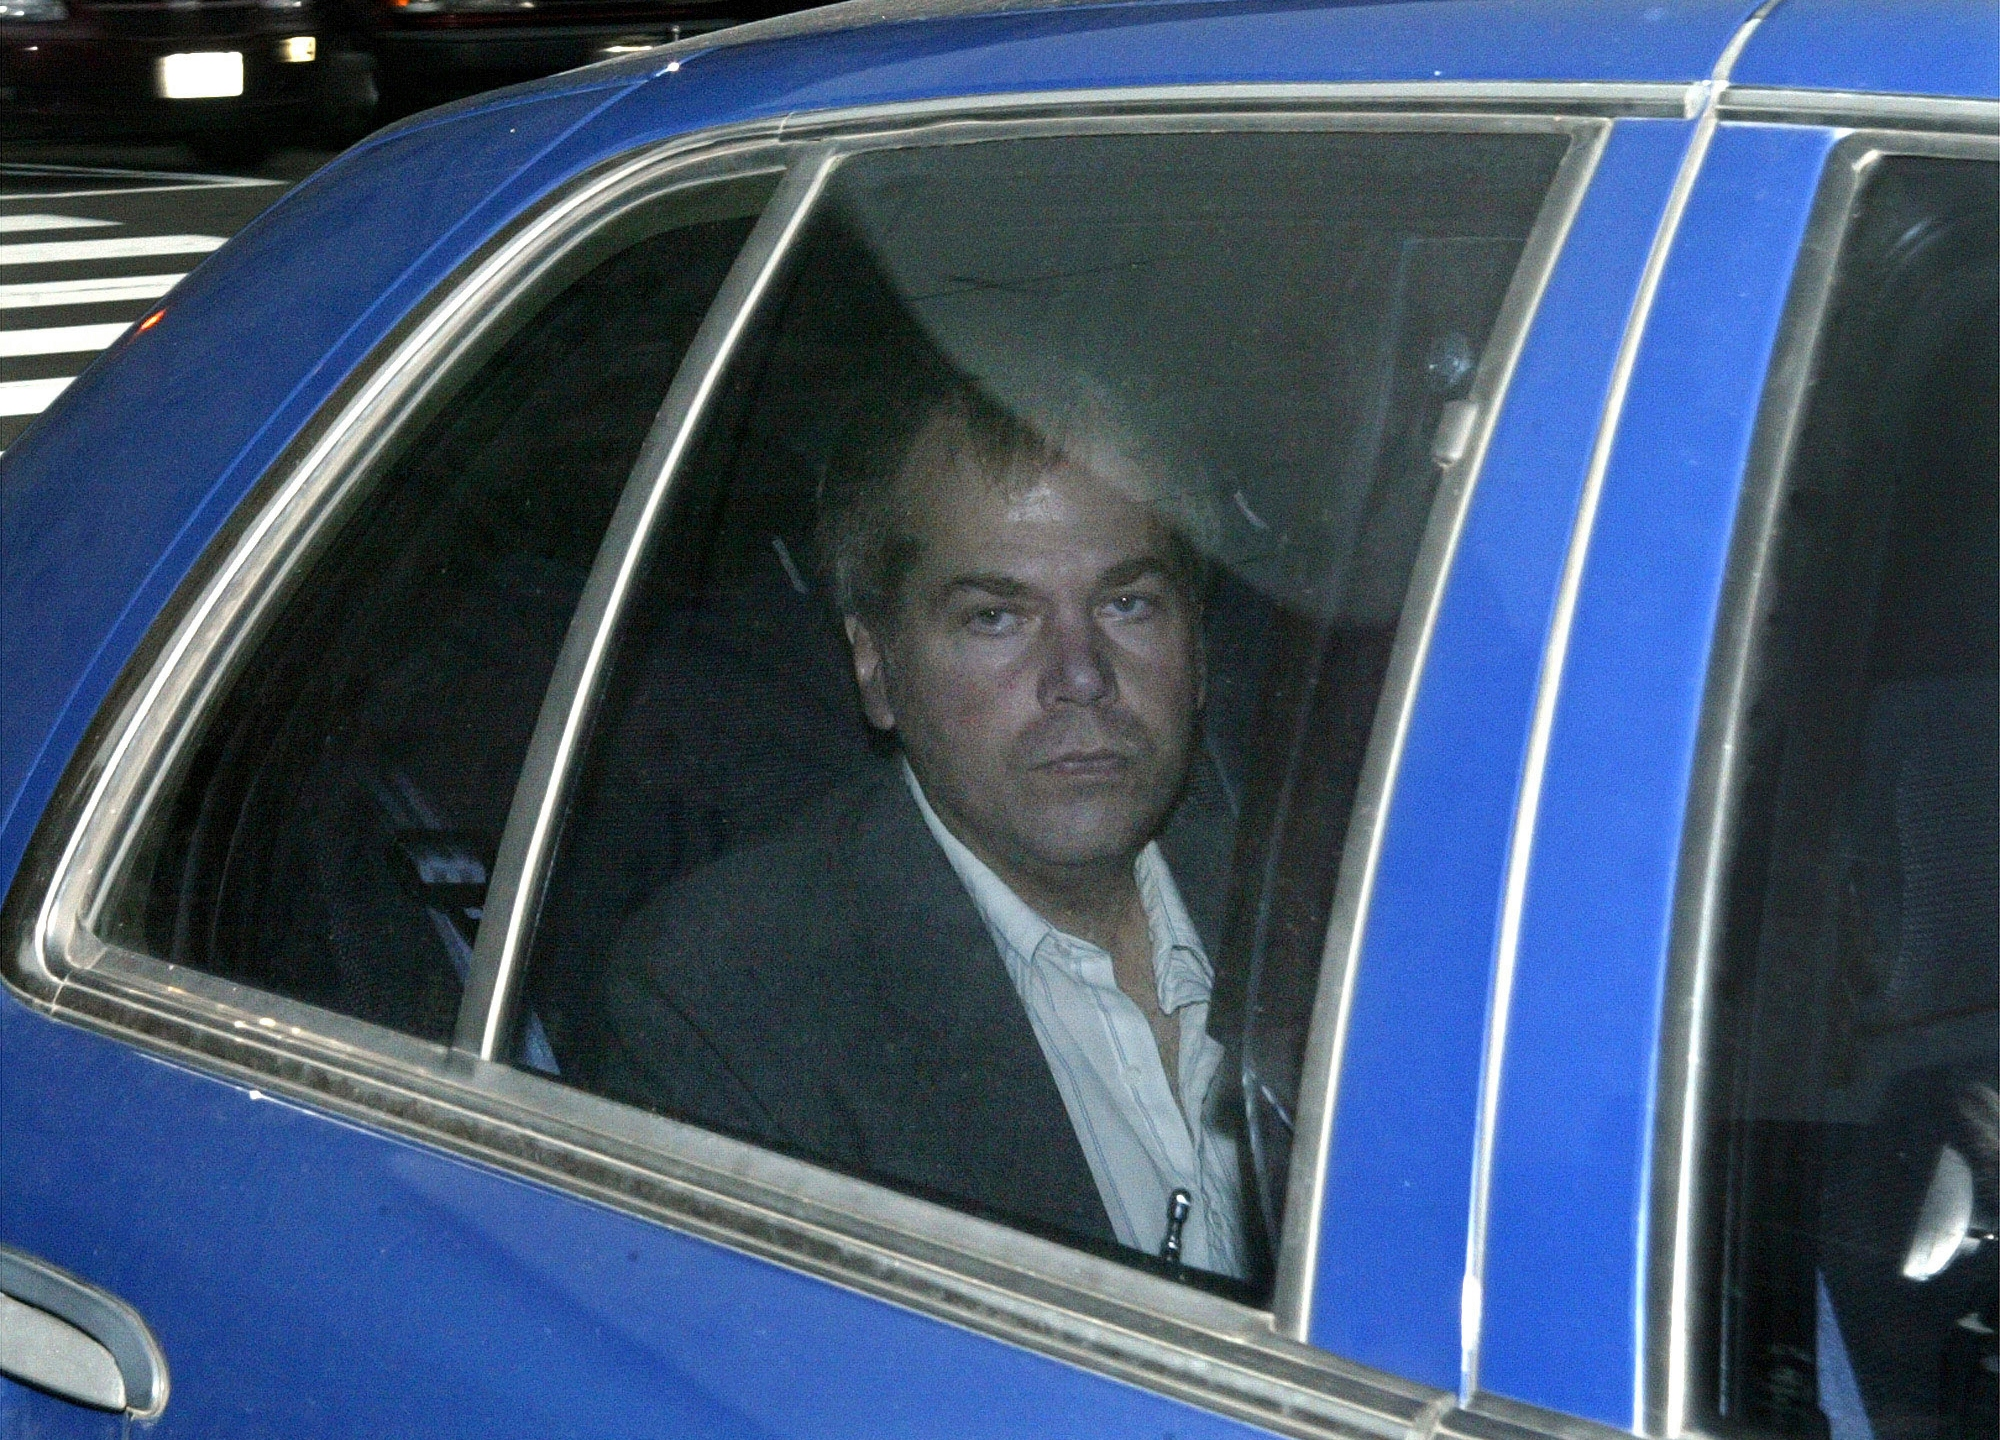 In this Nov. 18, 2003, file photo, John Hinckley Jr. arrives at U.S. District Court in Washington. Lawyers for Hinckley, the man who tried to assassinate President Ronald Reagan, are scheduled to argue in court Monday, Sept. 27, 2021, that the 66-year-old should be freed from restrictions placed on him after he moved out of a Washington hospital in 2016. (AP Photo/Evan Vucci, File)